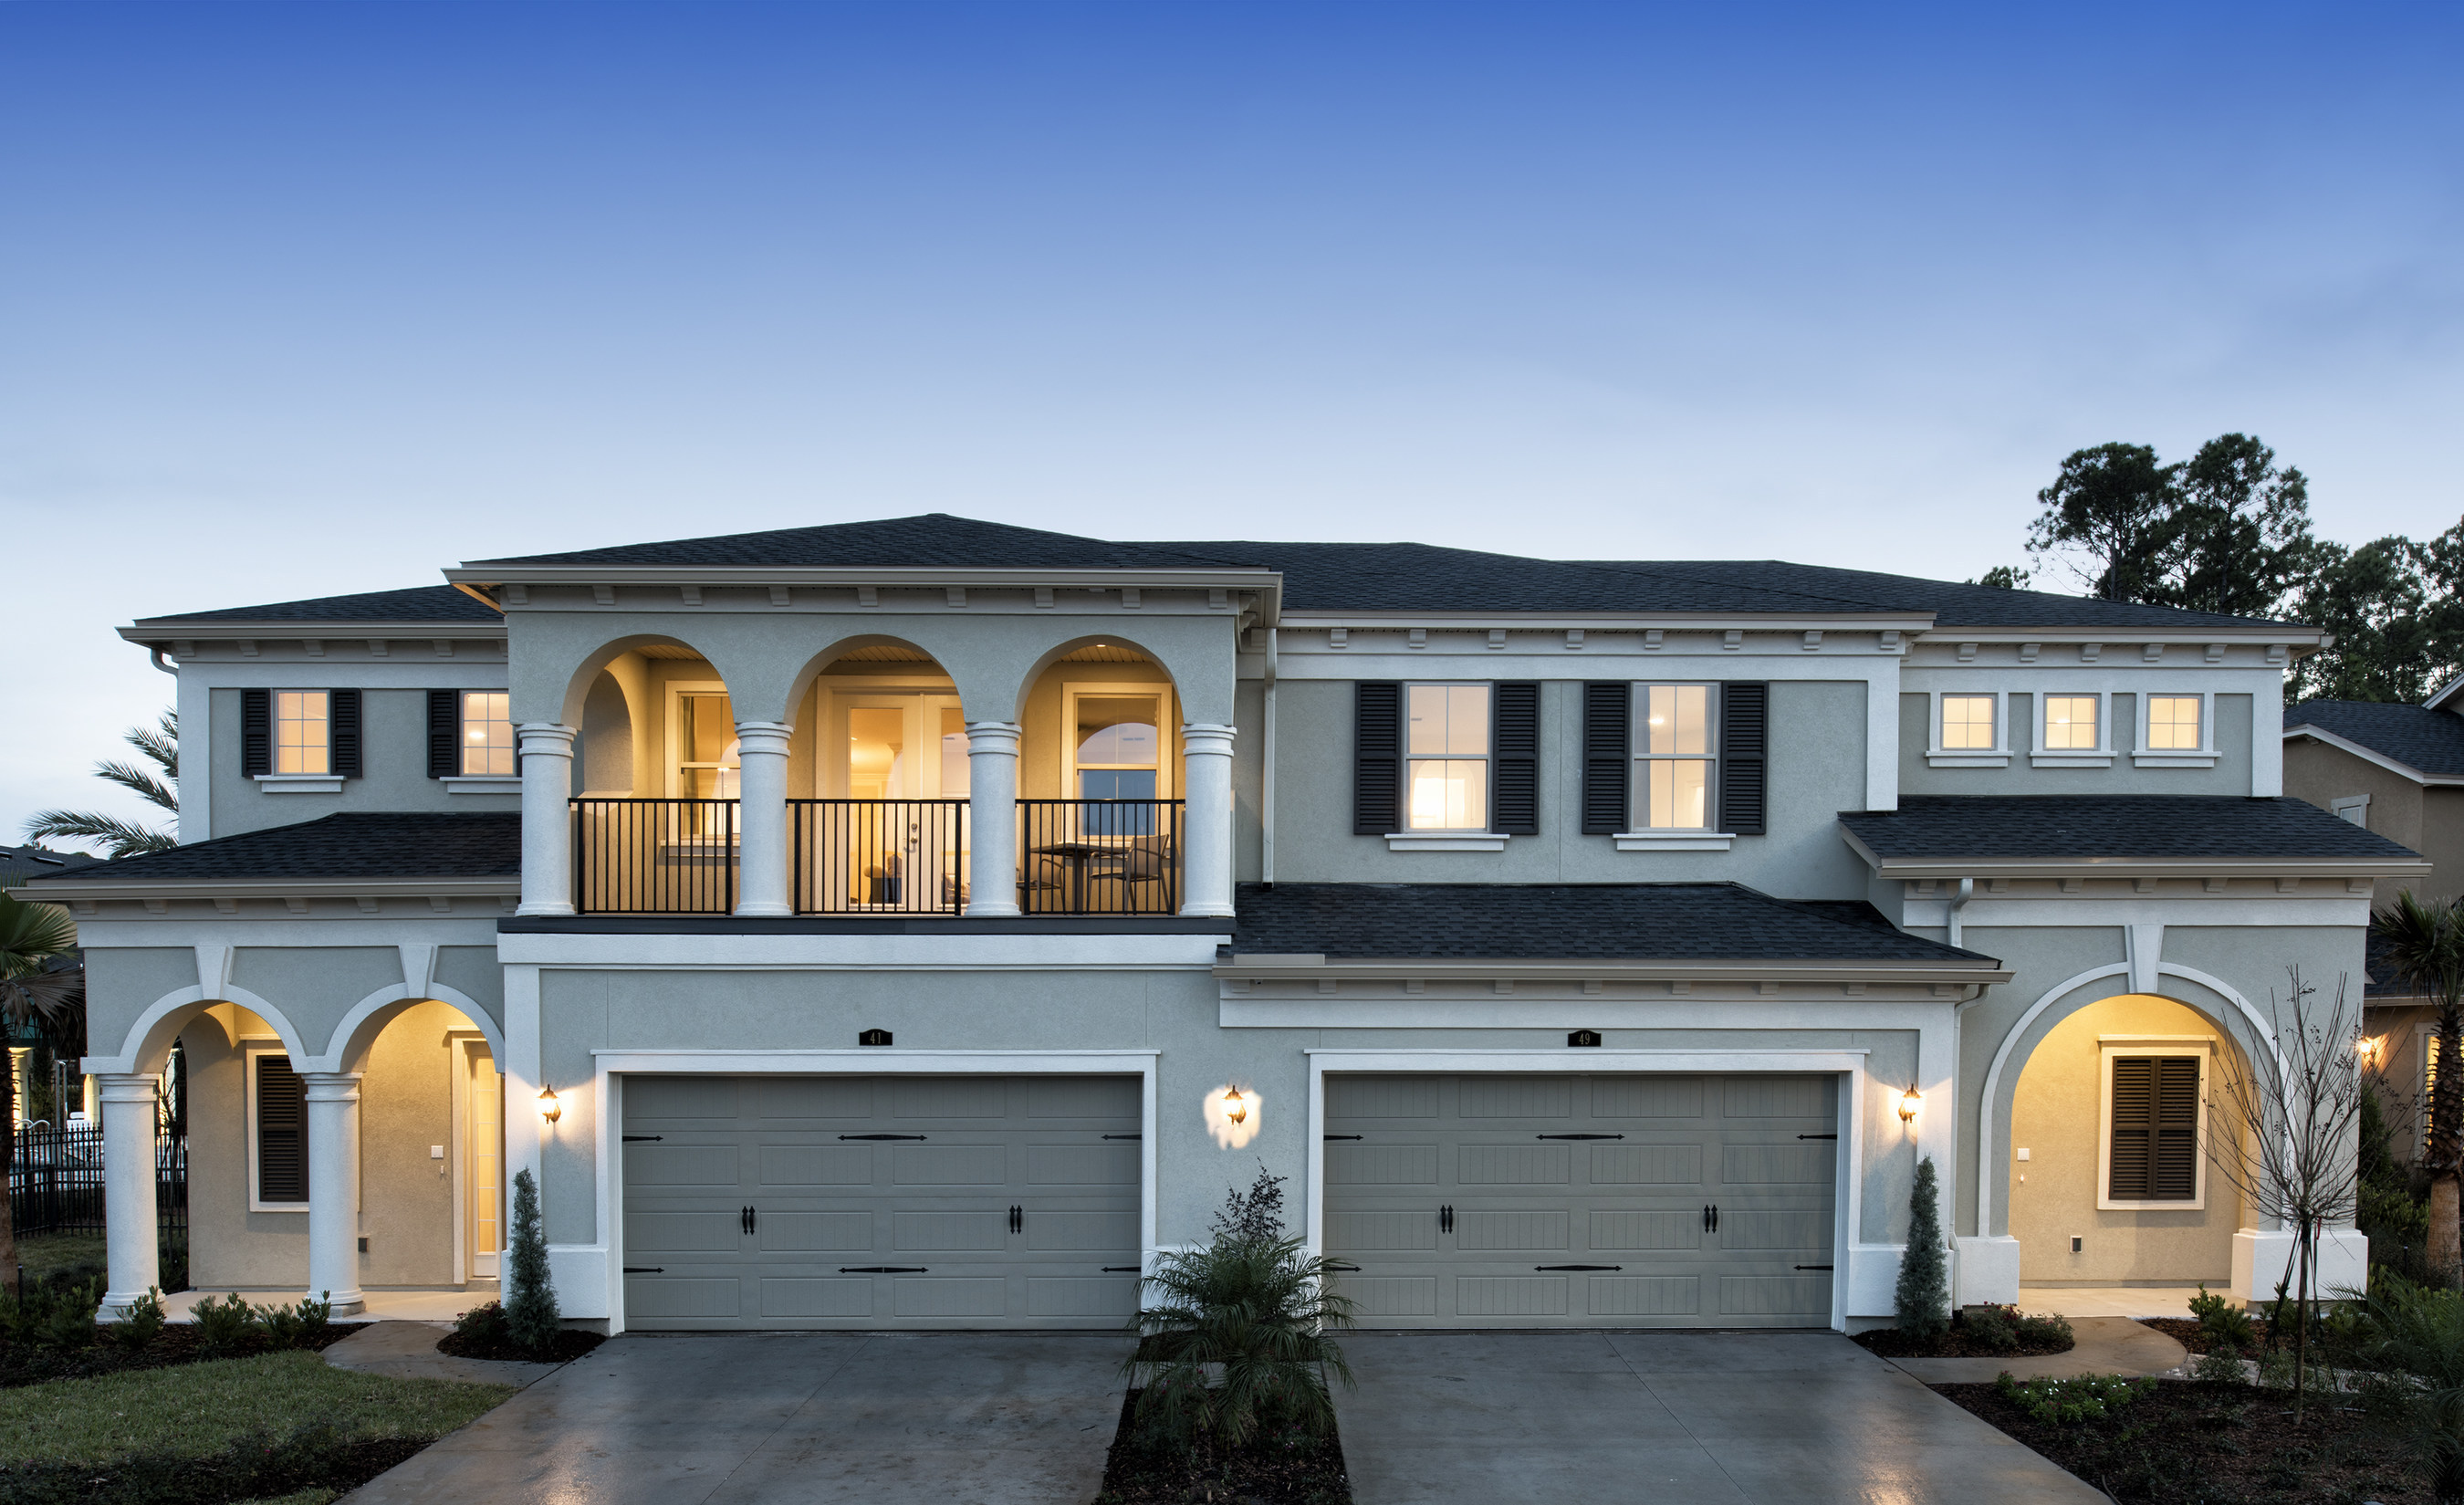 Standard Pacific Homes Introduces The Villas A Unique Collection Of Single Story In